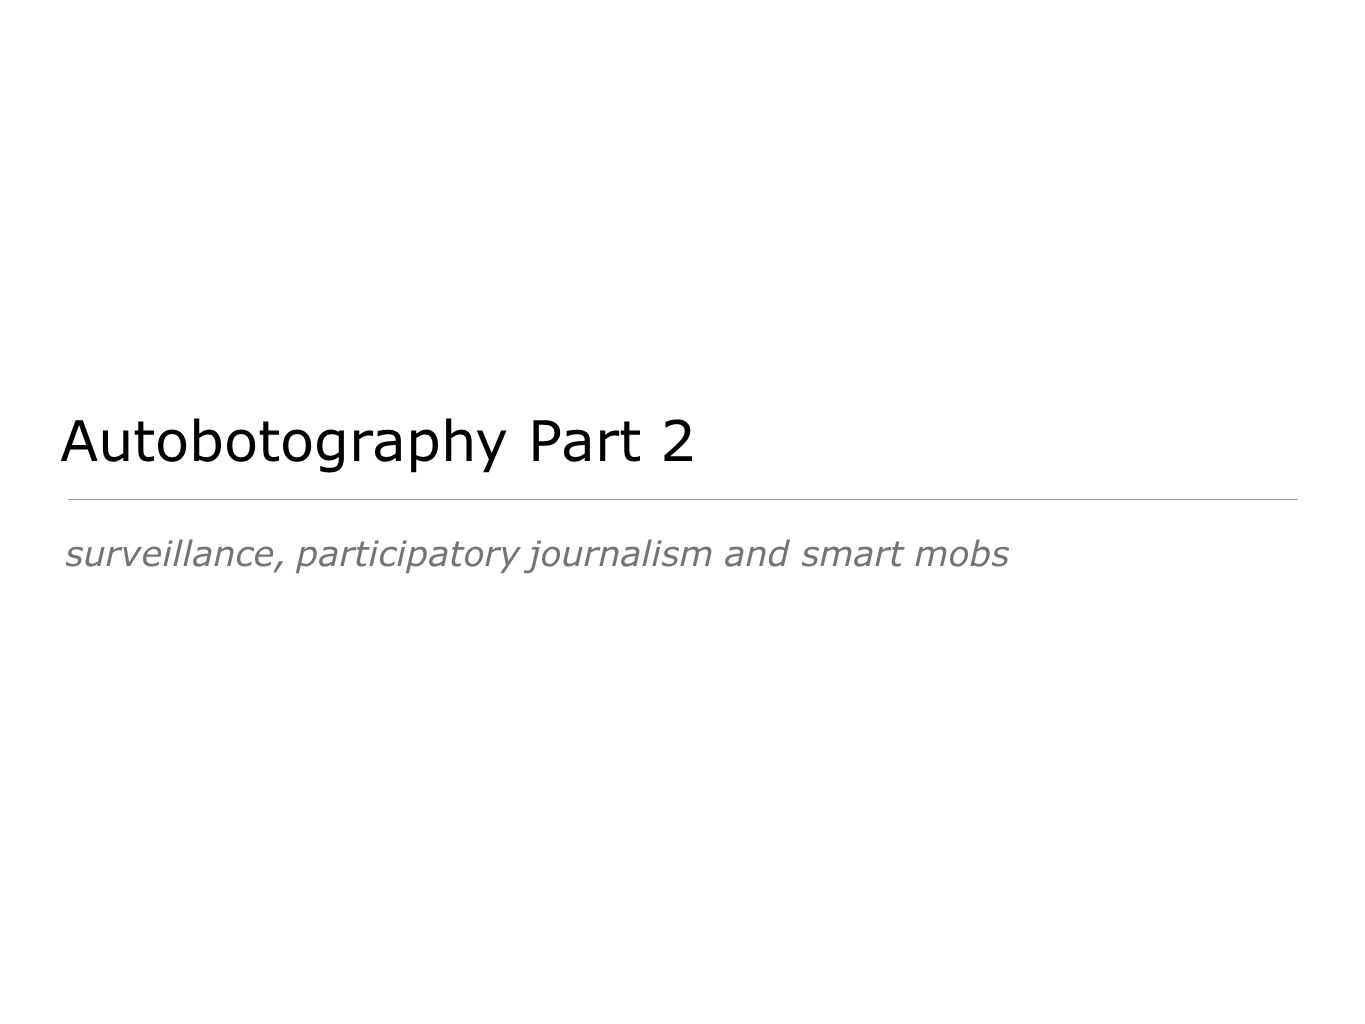 surveillance, participatory journalism and smart mobs Autobotography Part 2